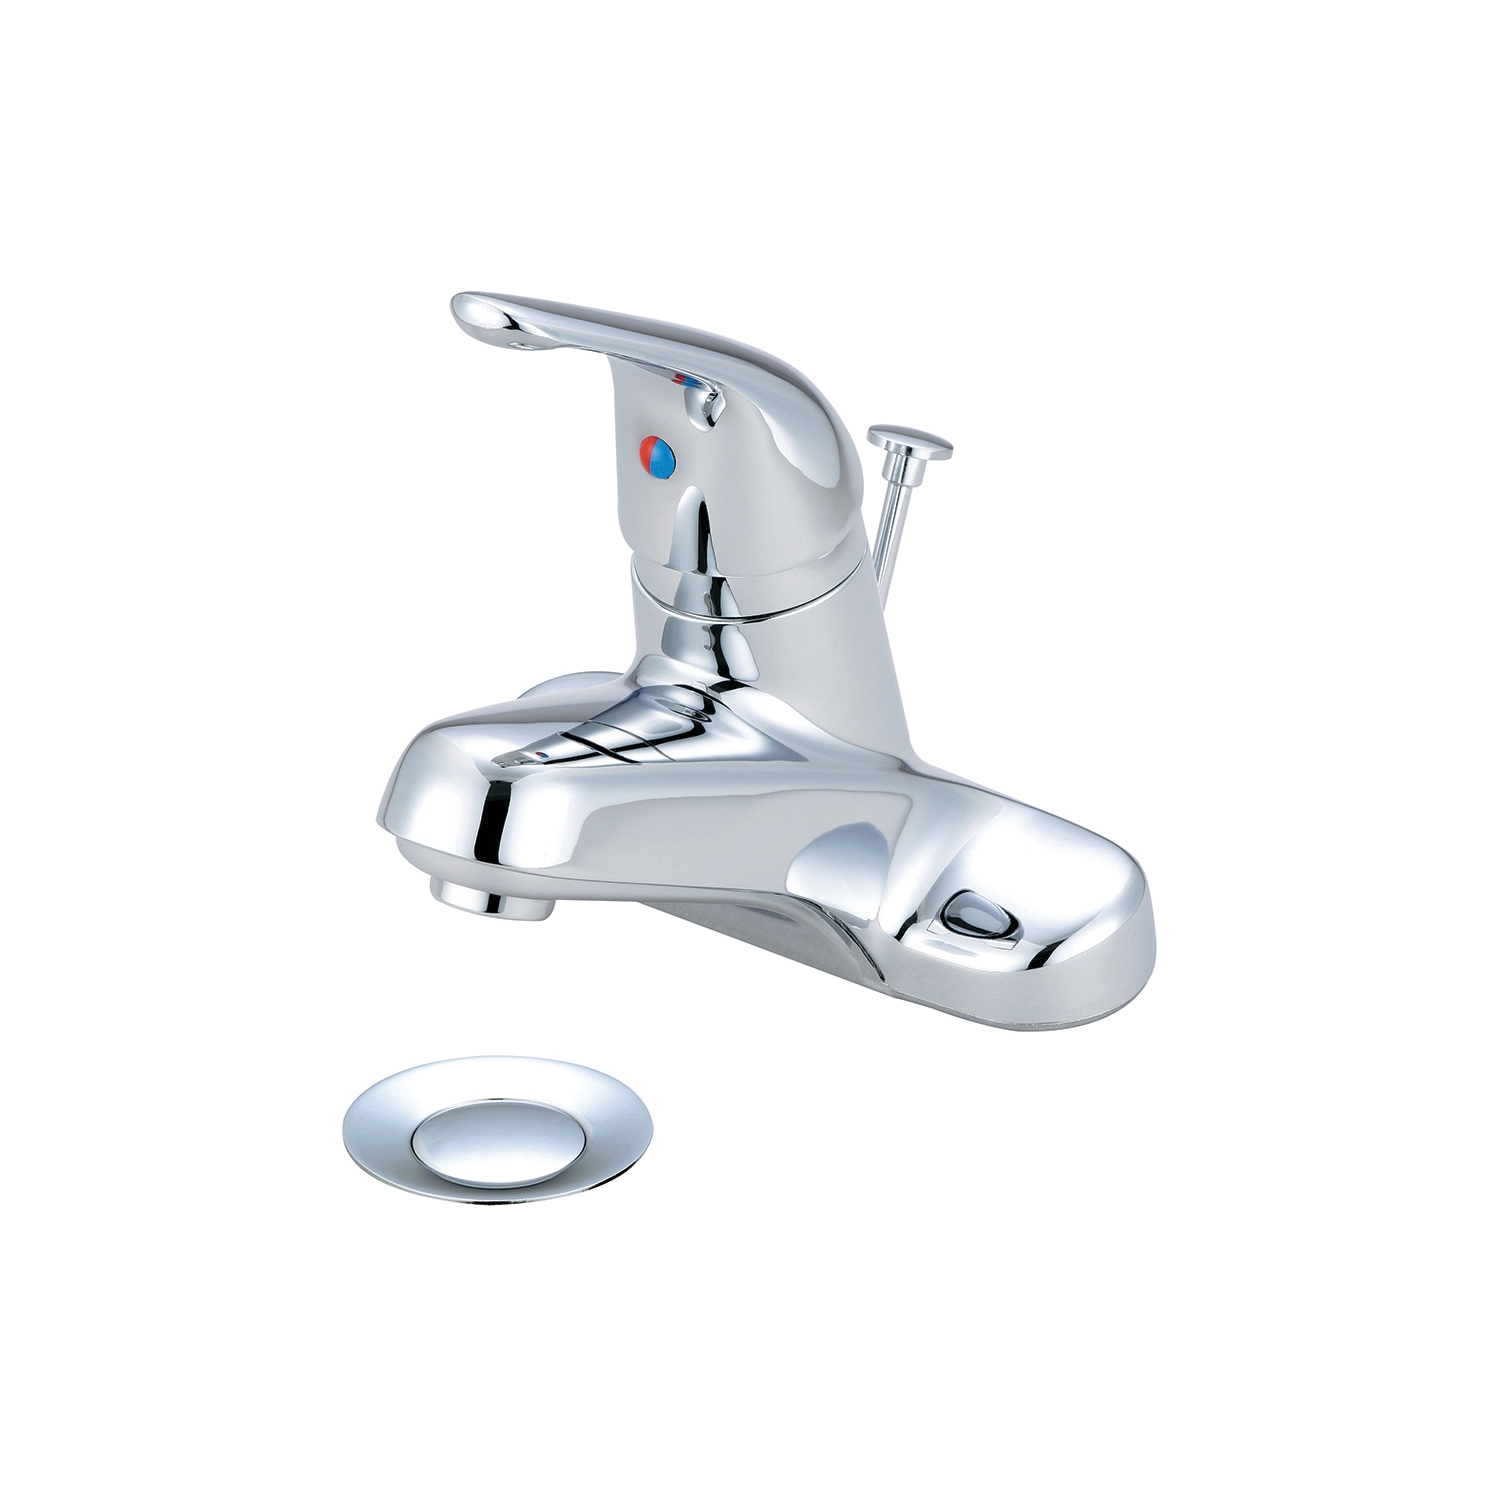 OLYMPIA L-6162 Elite Lavatory Faucet, Polished Chrome, 1 Handles, Brass Pop-Up Drain, 1.2 gpm Flow Rate